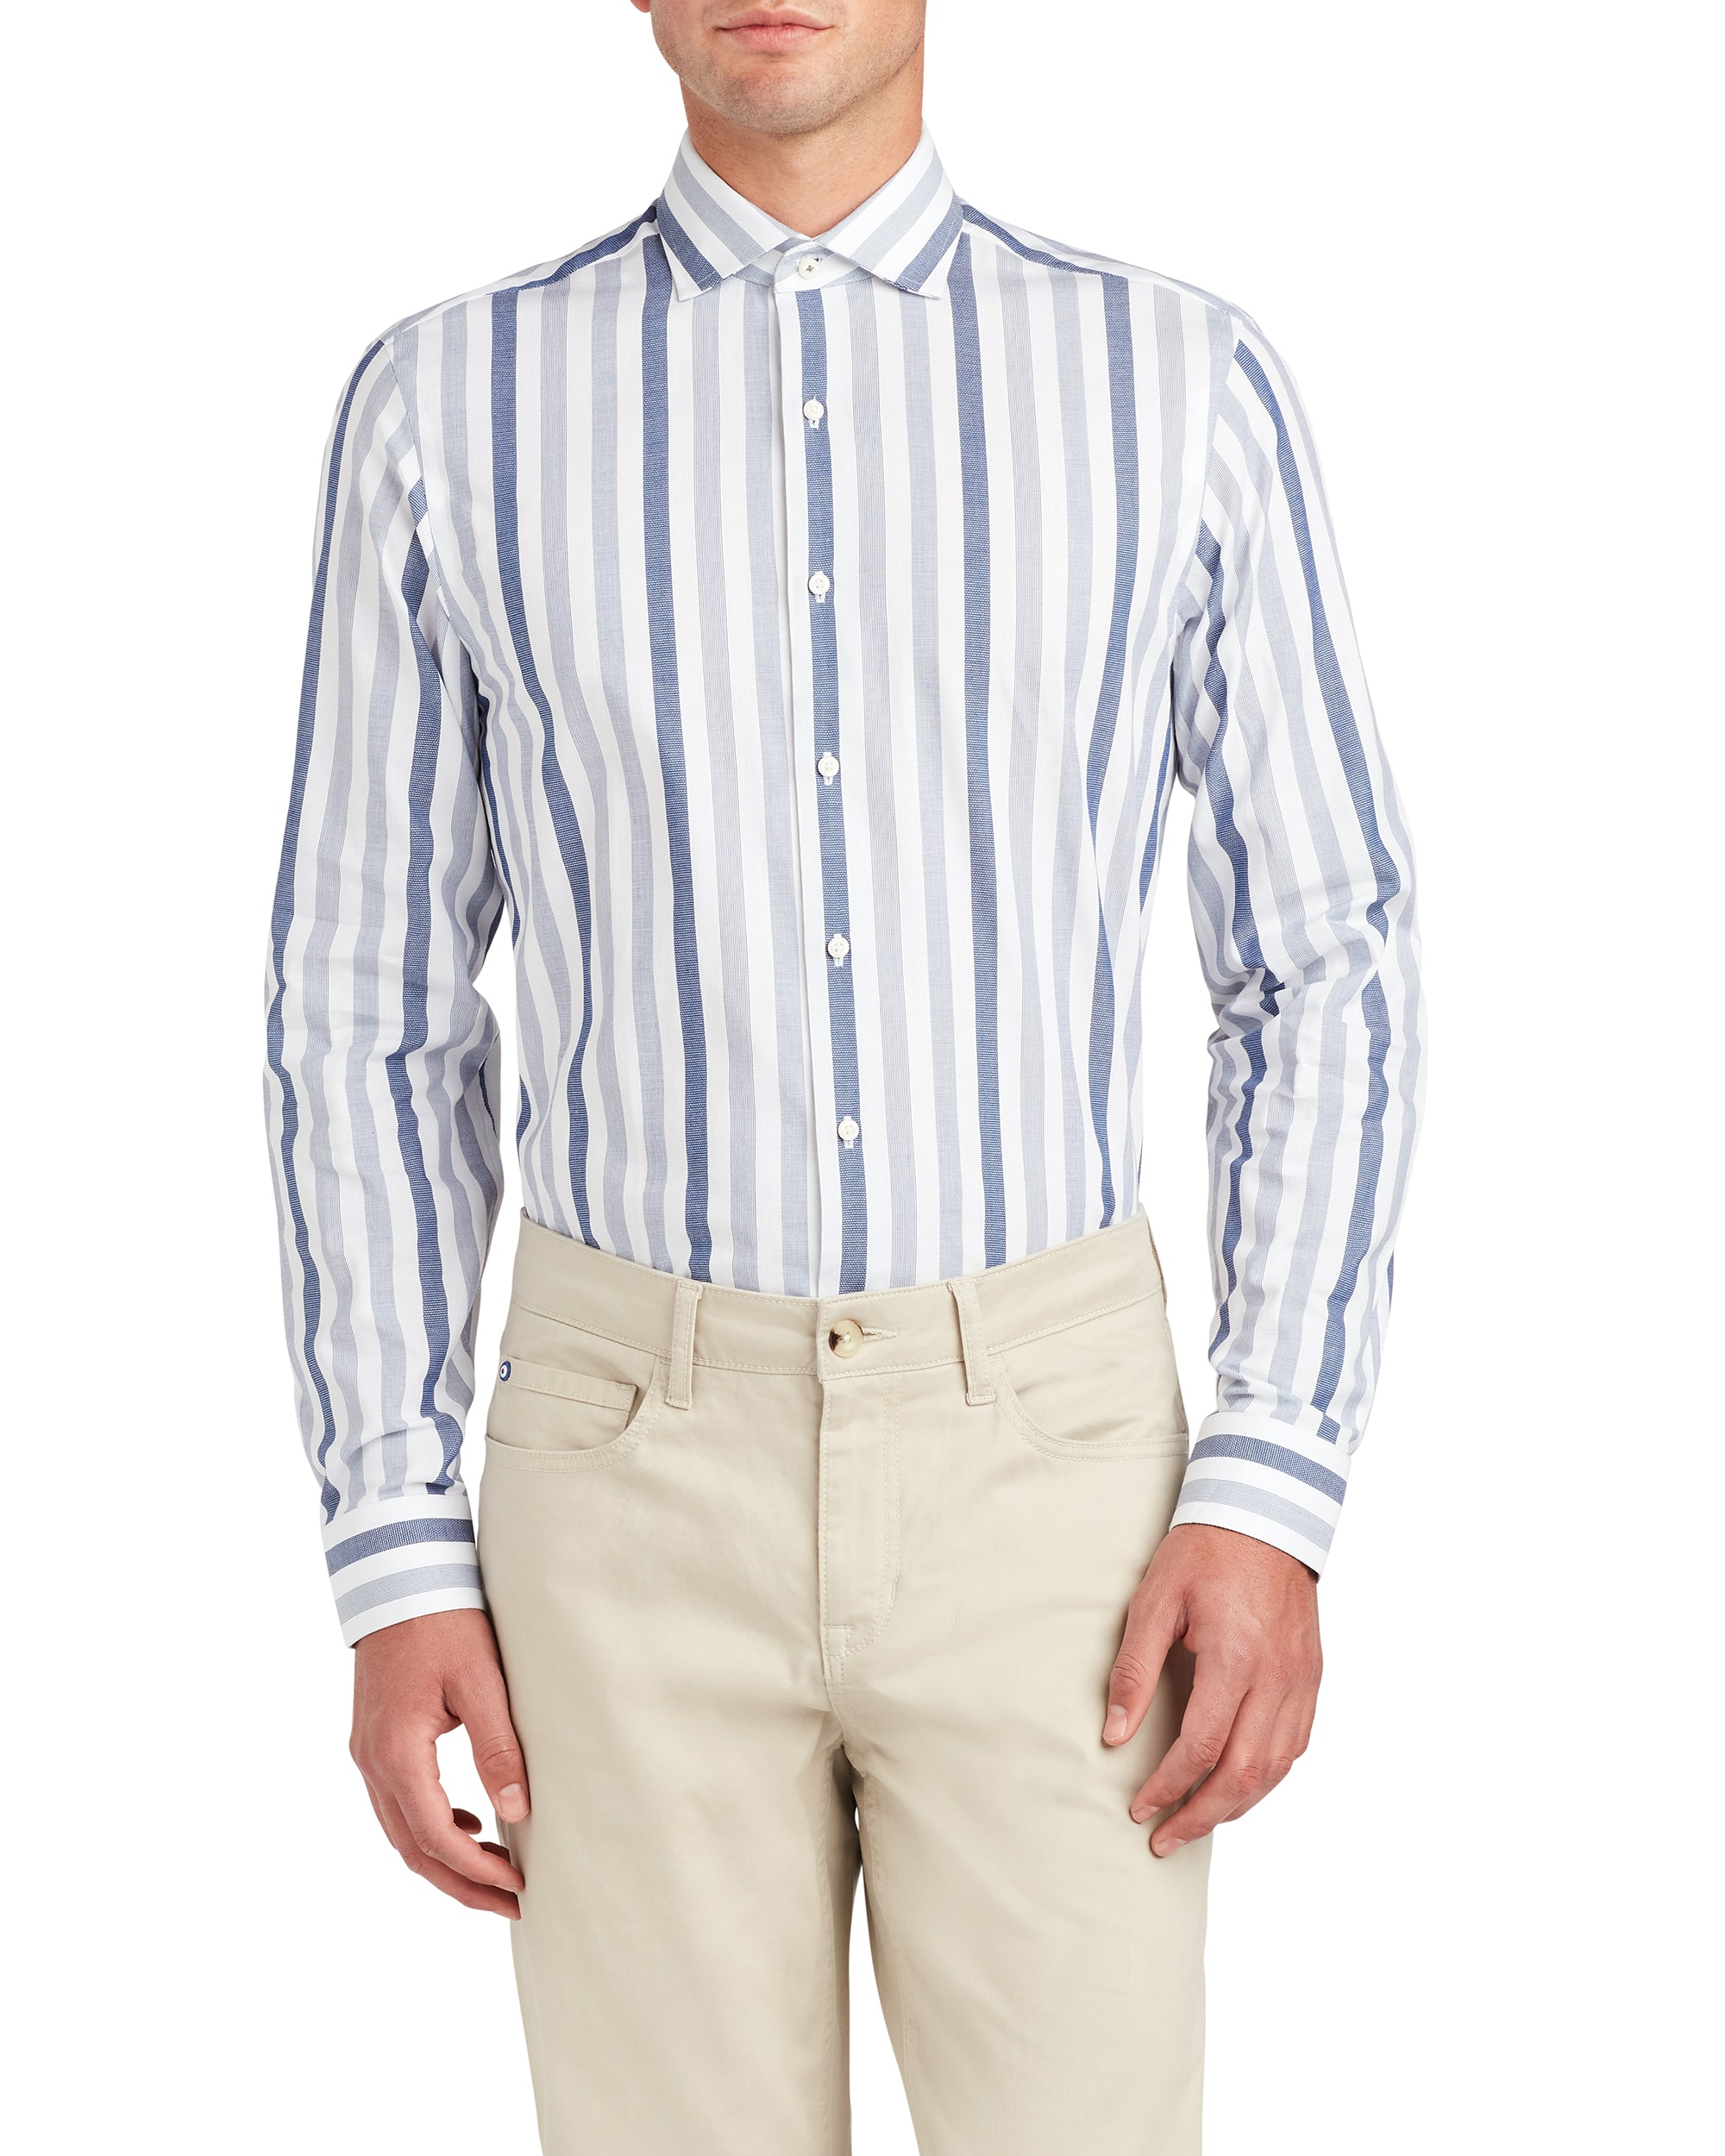 Wide Dobby Stripe Skinny Fit Dress Shirt - Blue